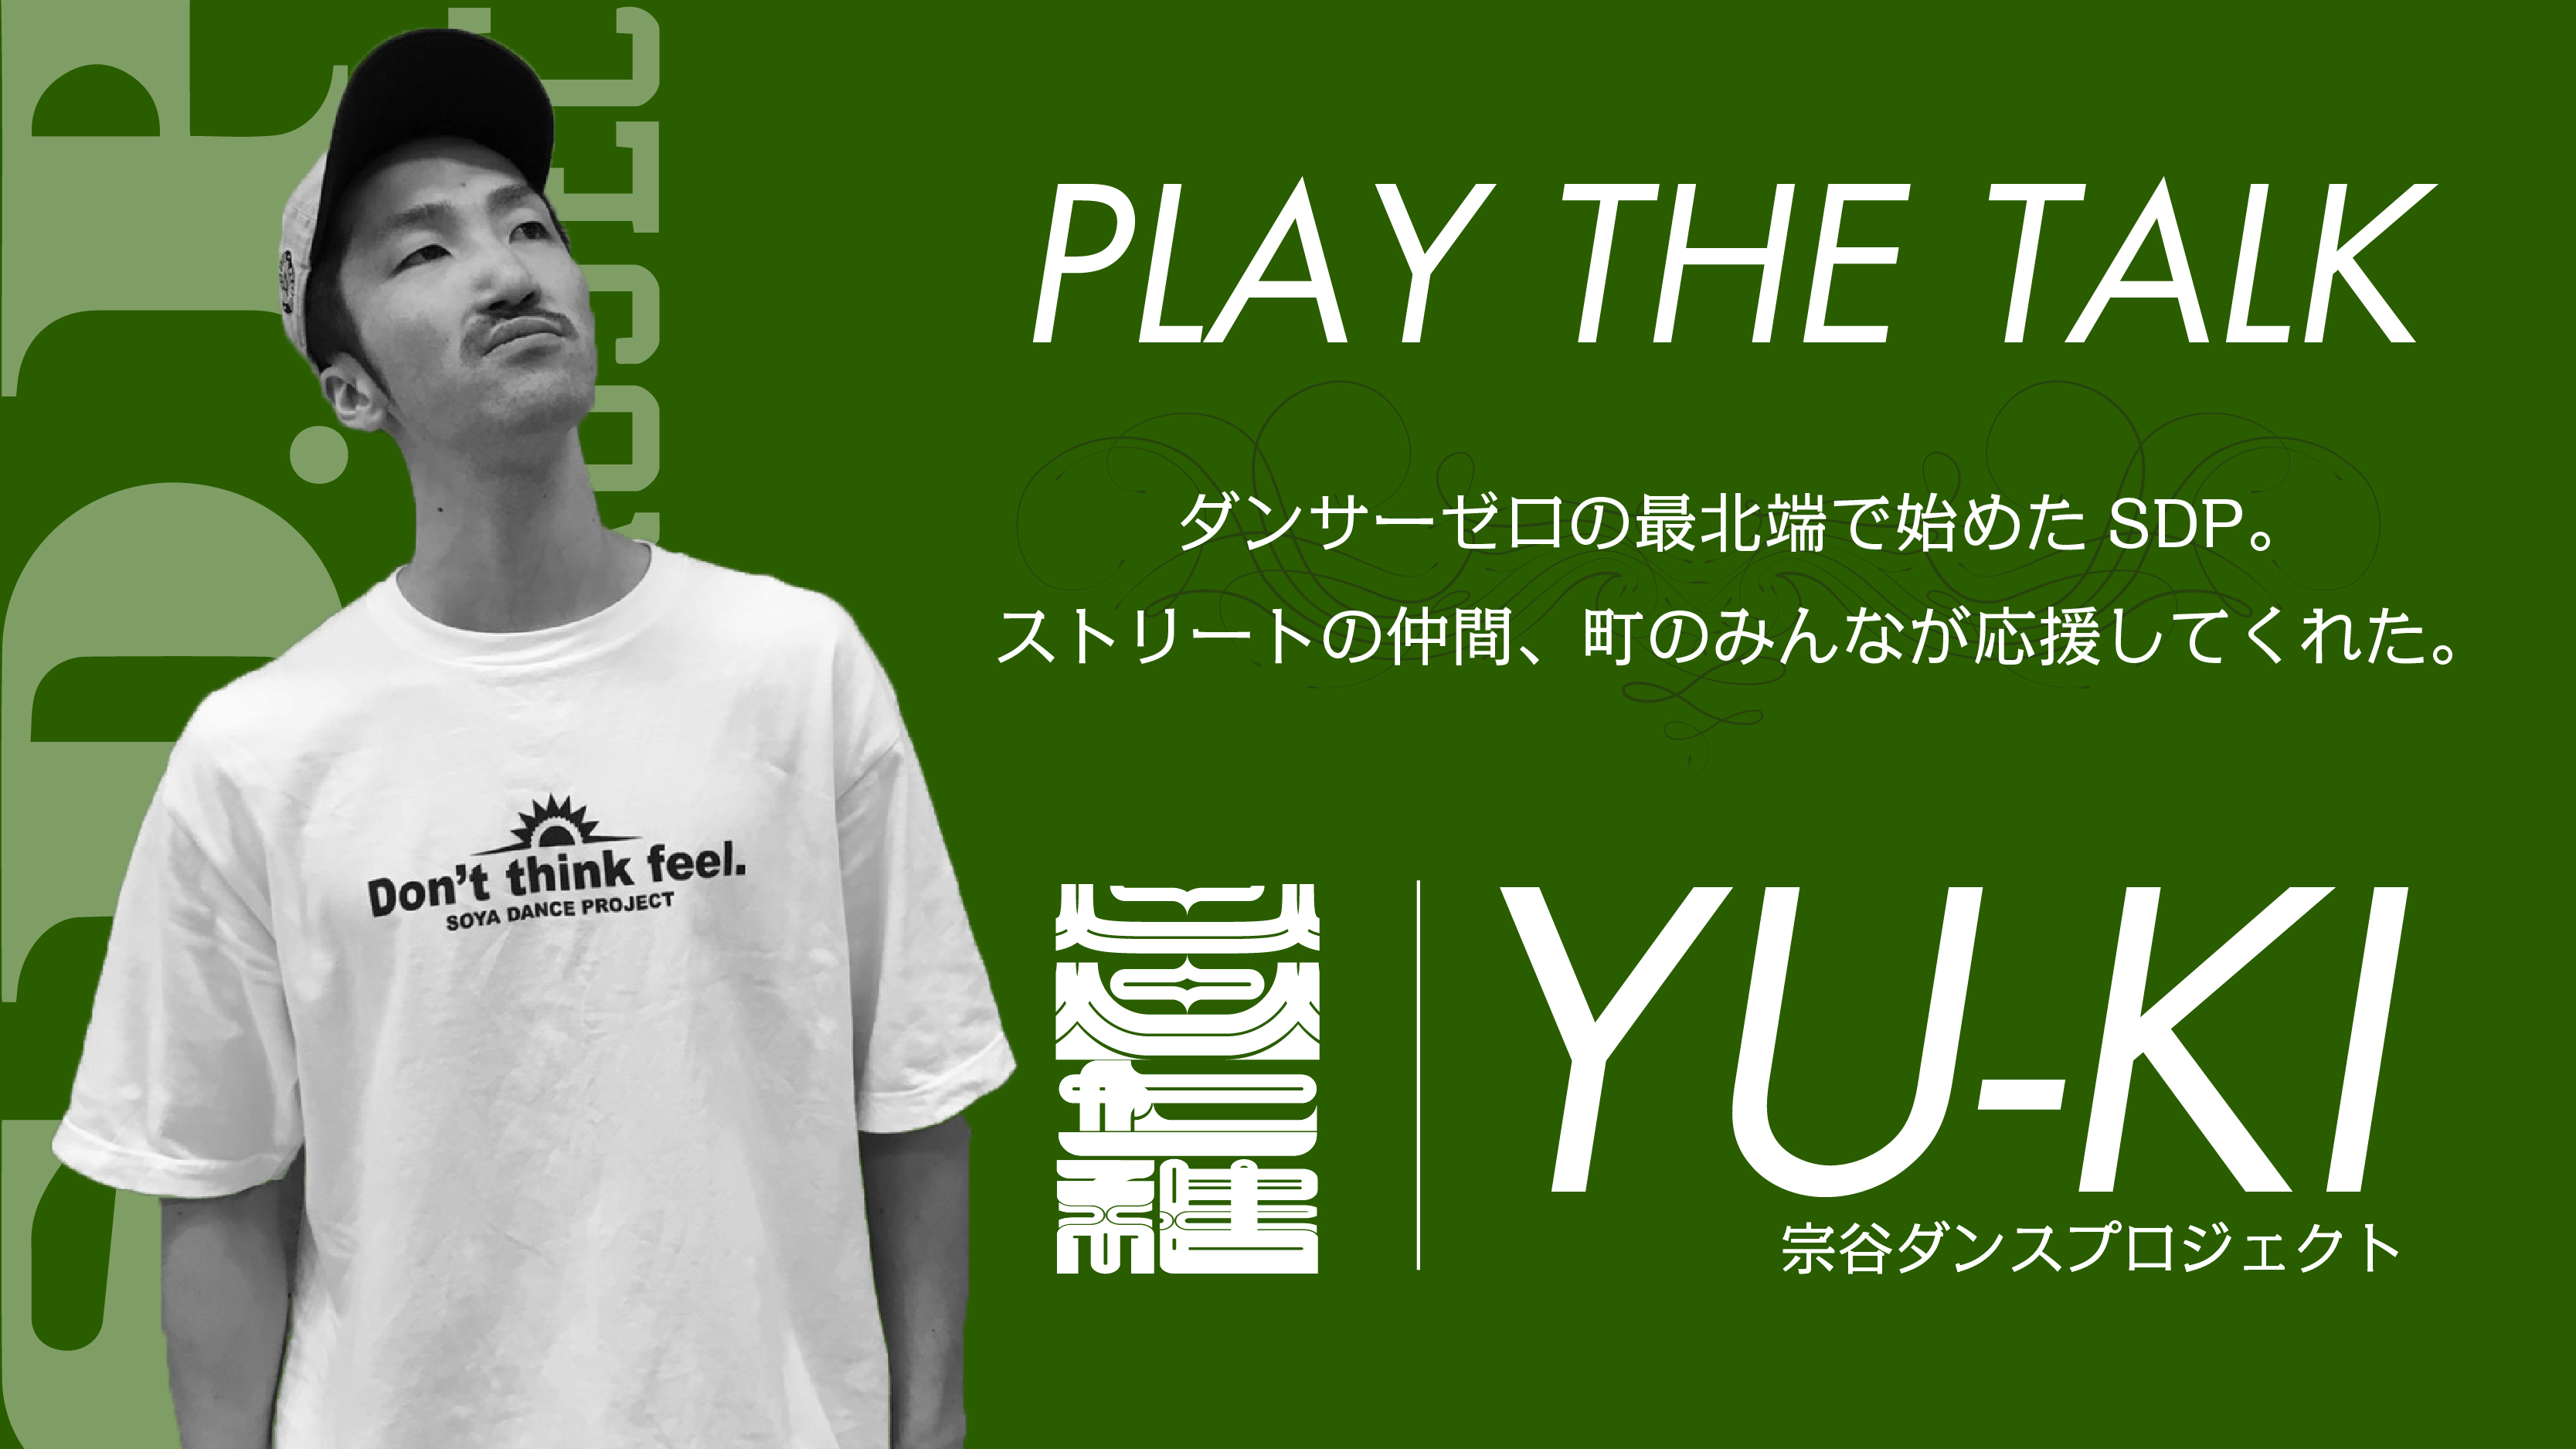 PLAY THE TALK〜KING DANCE7 WAKK×YU-KI〜